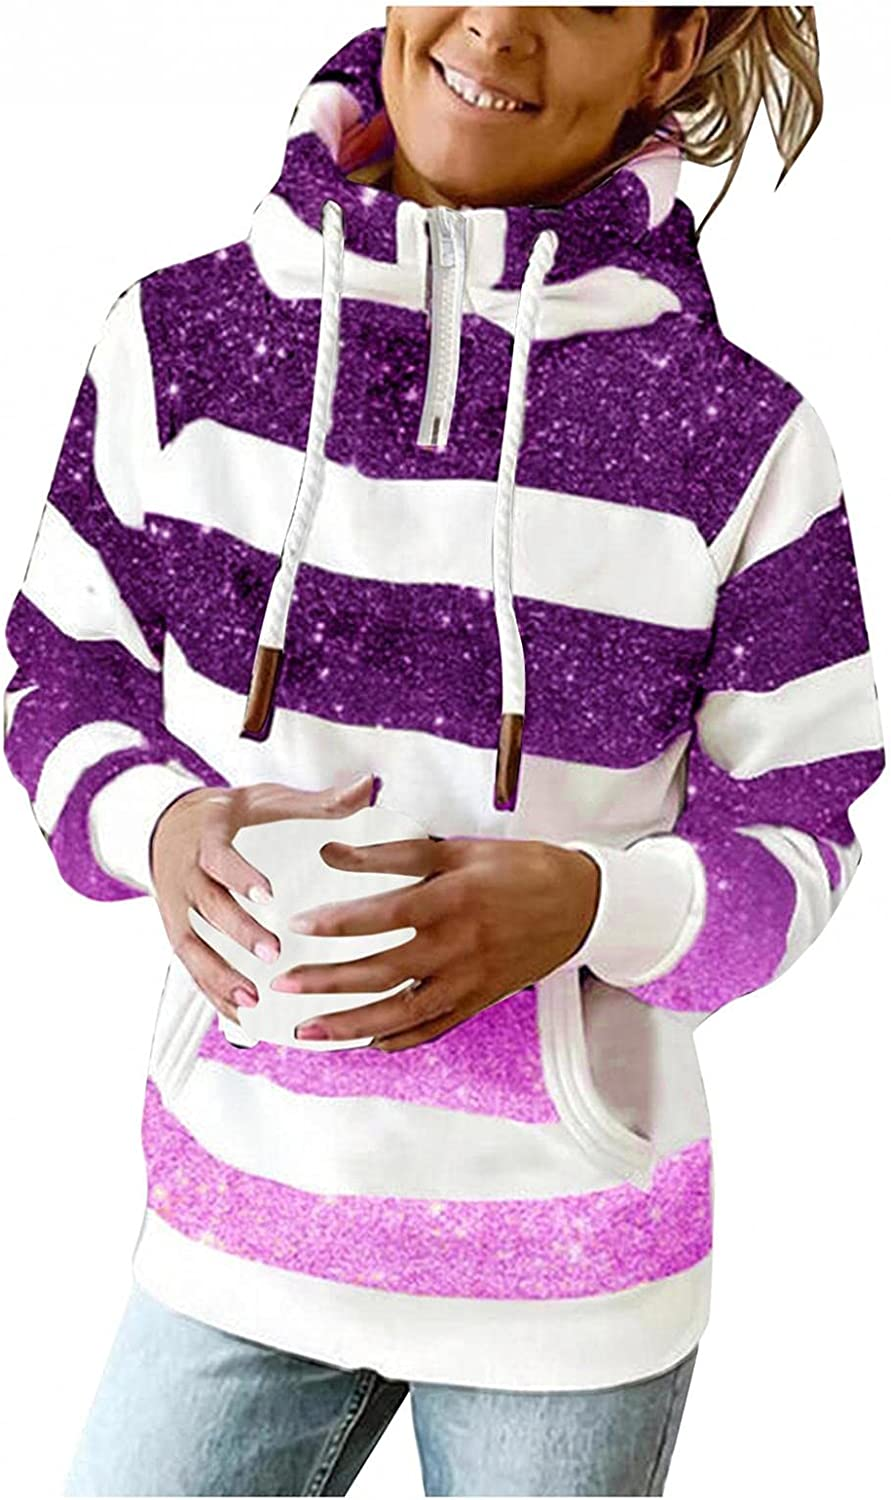 AODONG Hooded Sweatshirts for Women Casual Long Sleeve Lightweight 1/4 Zipper Striped Pullover Hoodies with Pocket